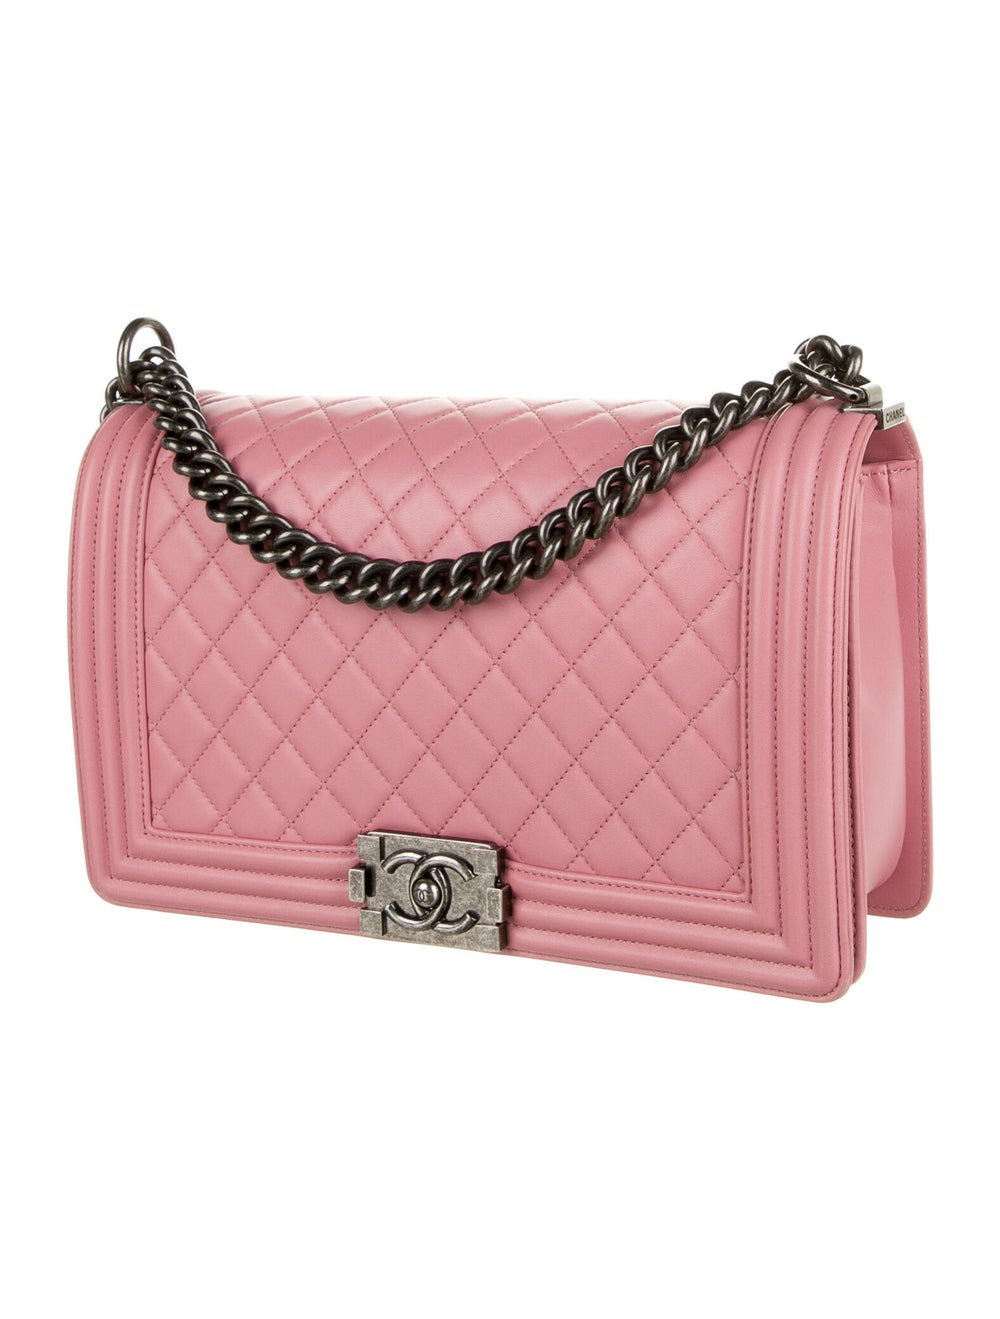 Chanel Large Quilted Boy Bag Pink - image 3